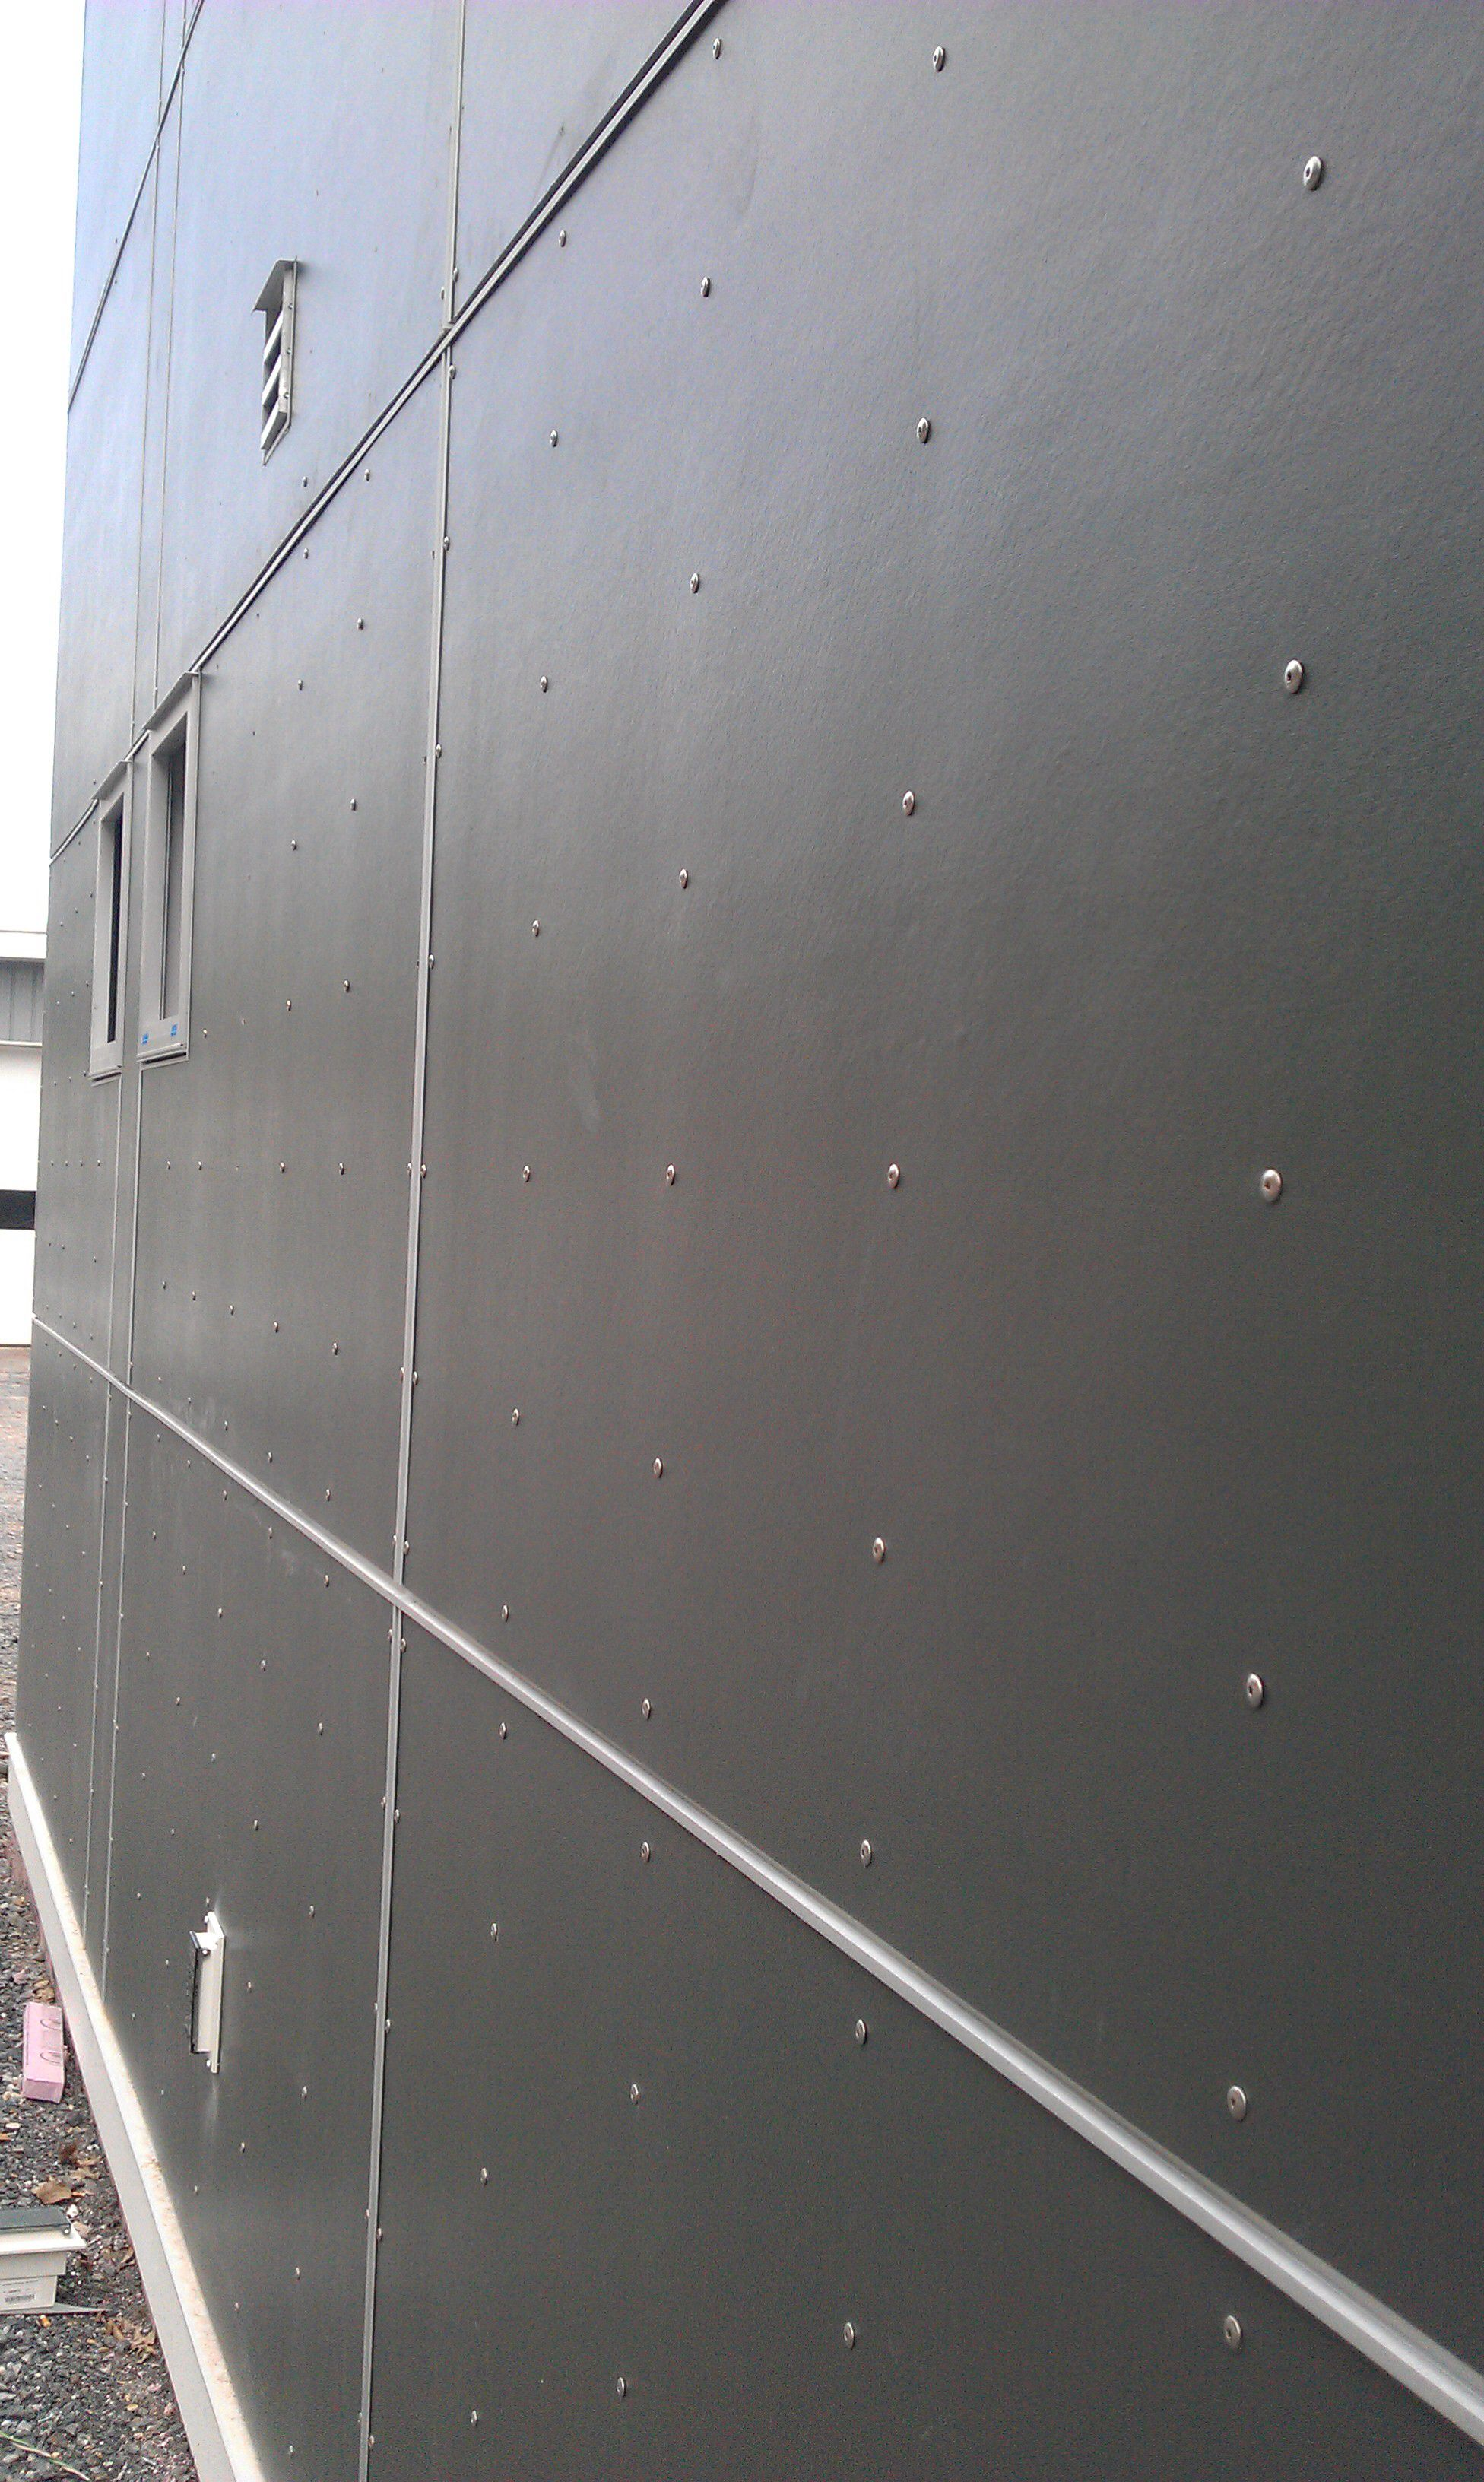 James Hardie Panels In Dark Grey With Exposed Fastening Screws To Give A Rivet Look Exterior Wall Materials Exterior Cladding Modern Exterior